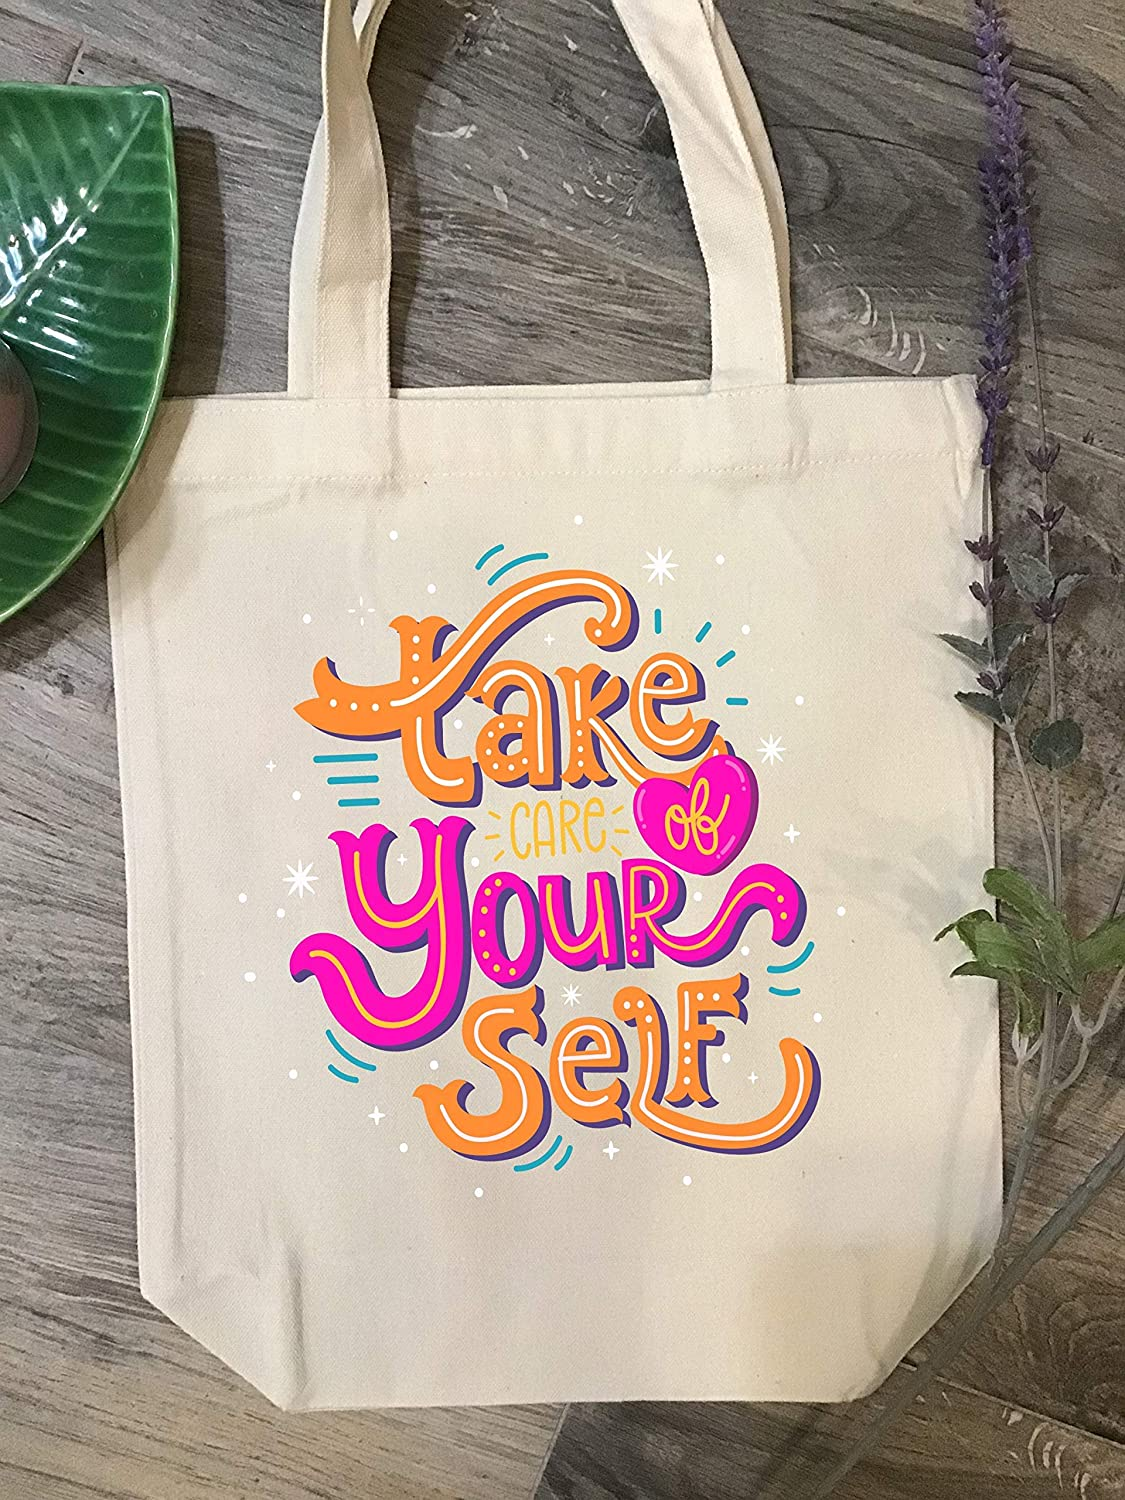 Outstanding Take Of Yourself Tote Heavy Gift- Duty Bag Persona In stock Personalized-